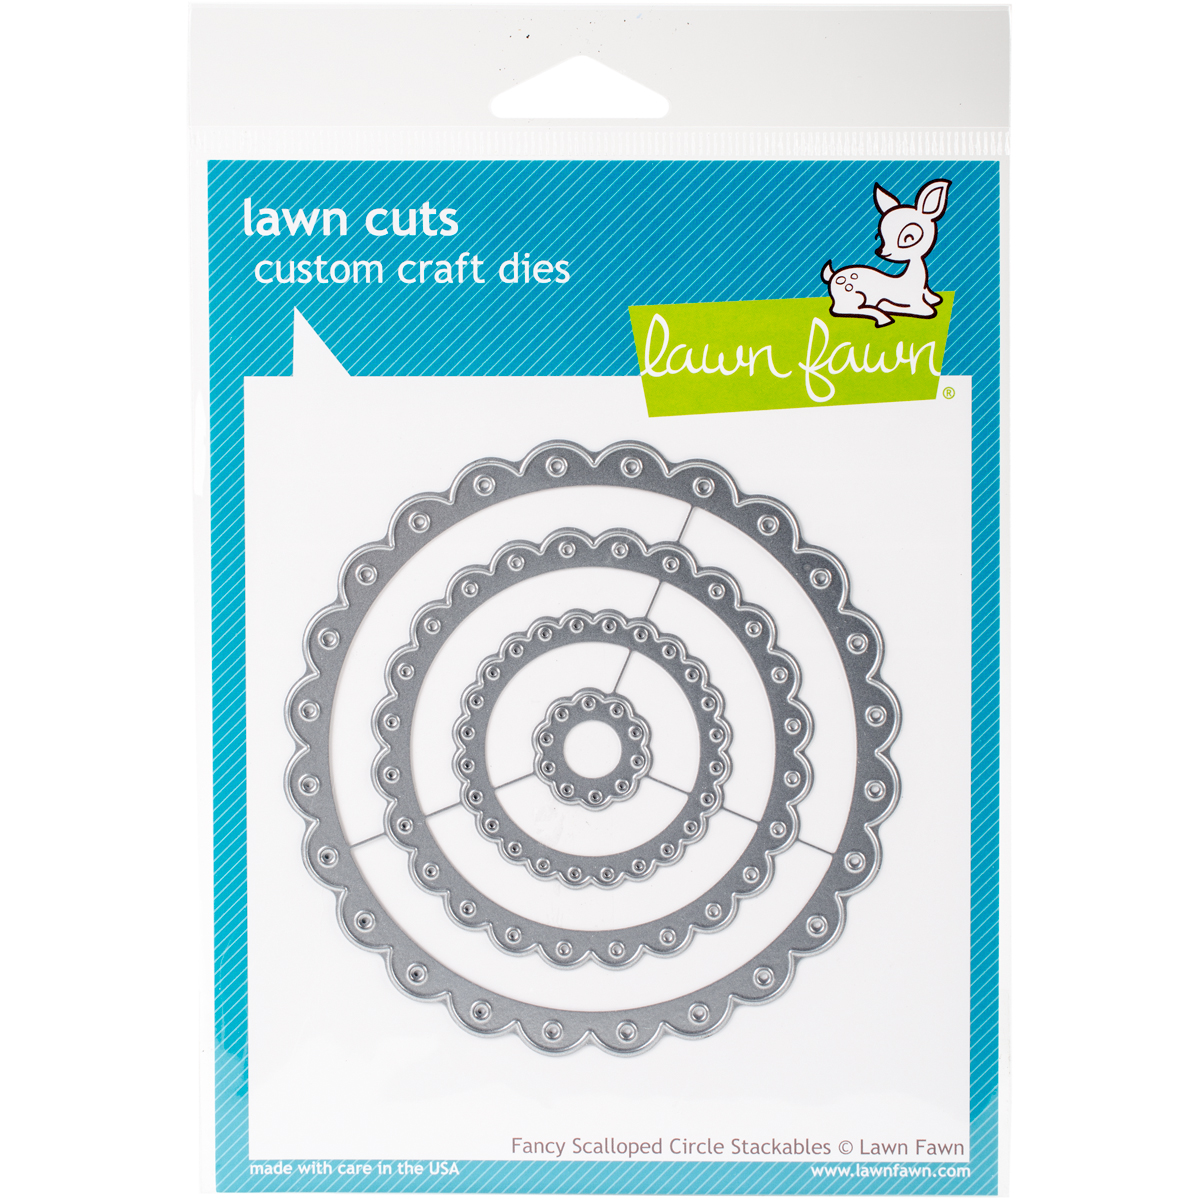 SCALLOPED CIRCLE STACKABLES -LAWN CUTS DIES